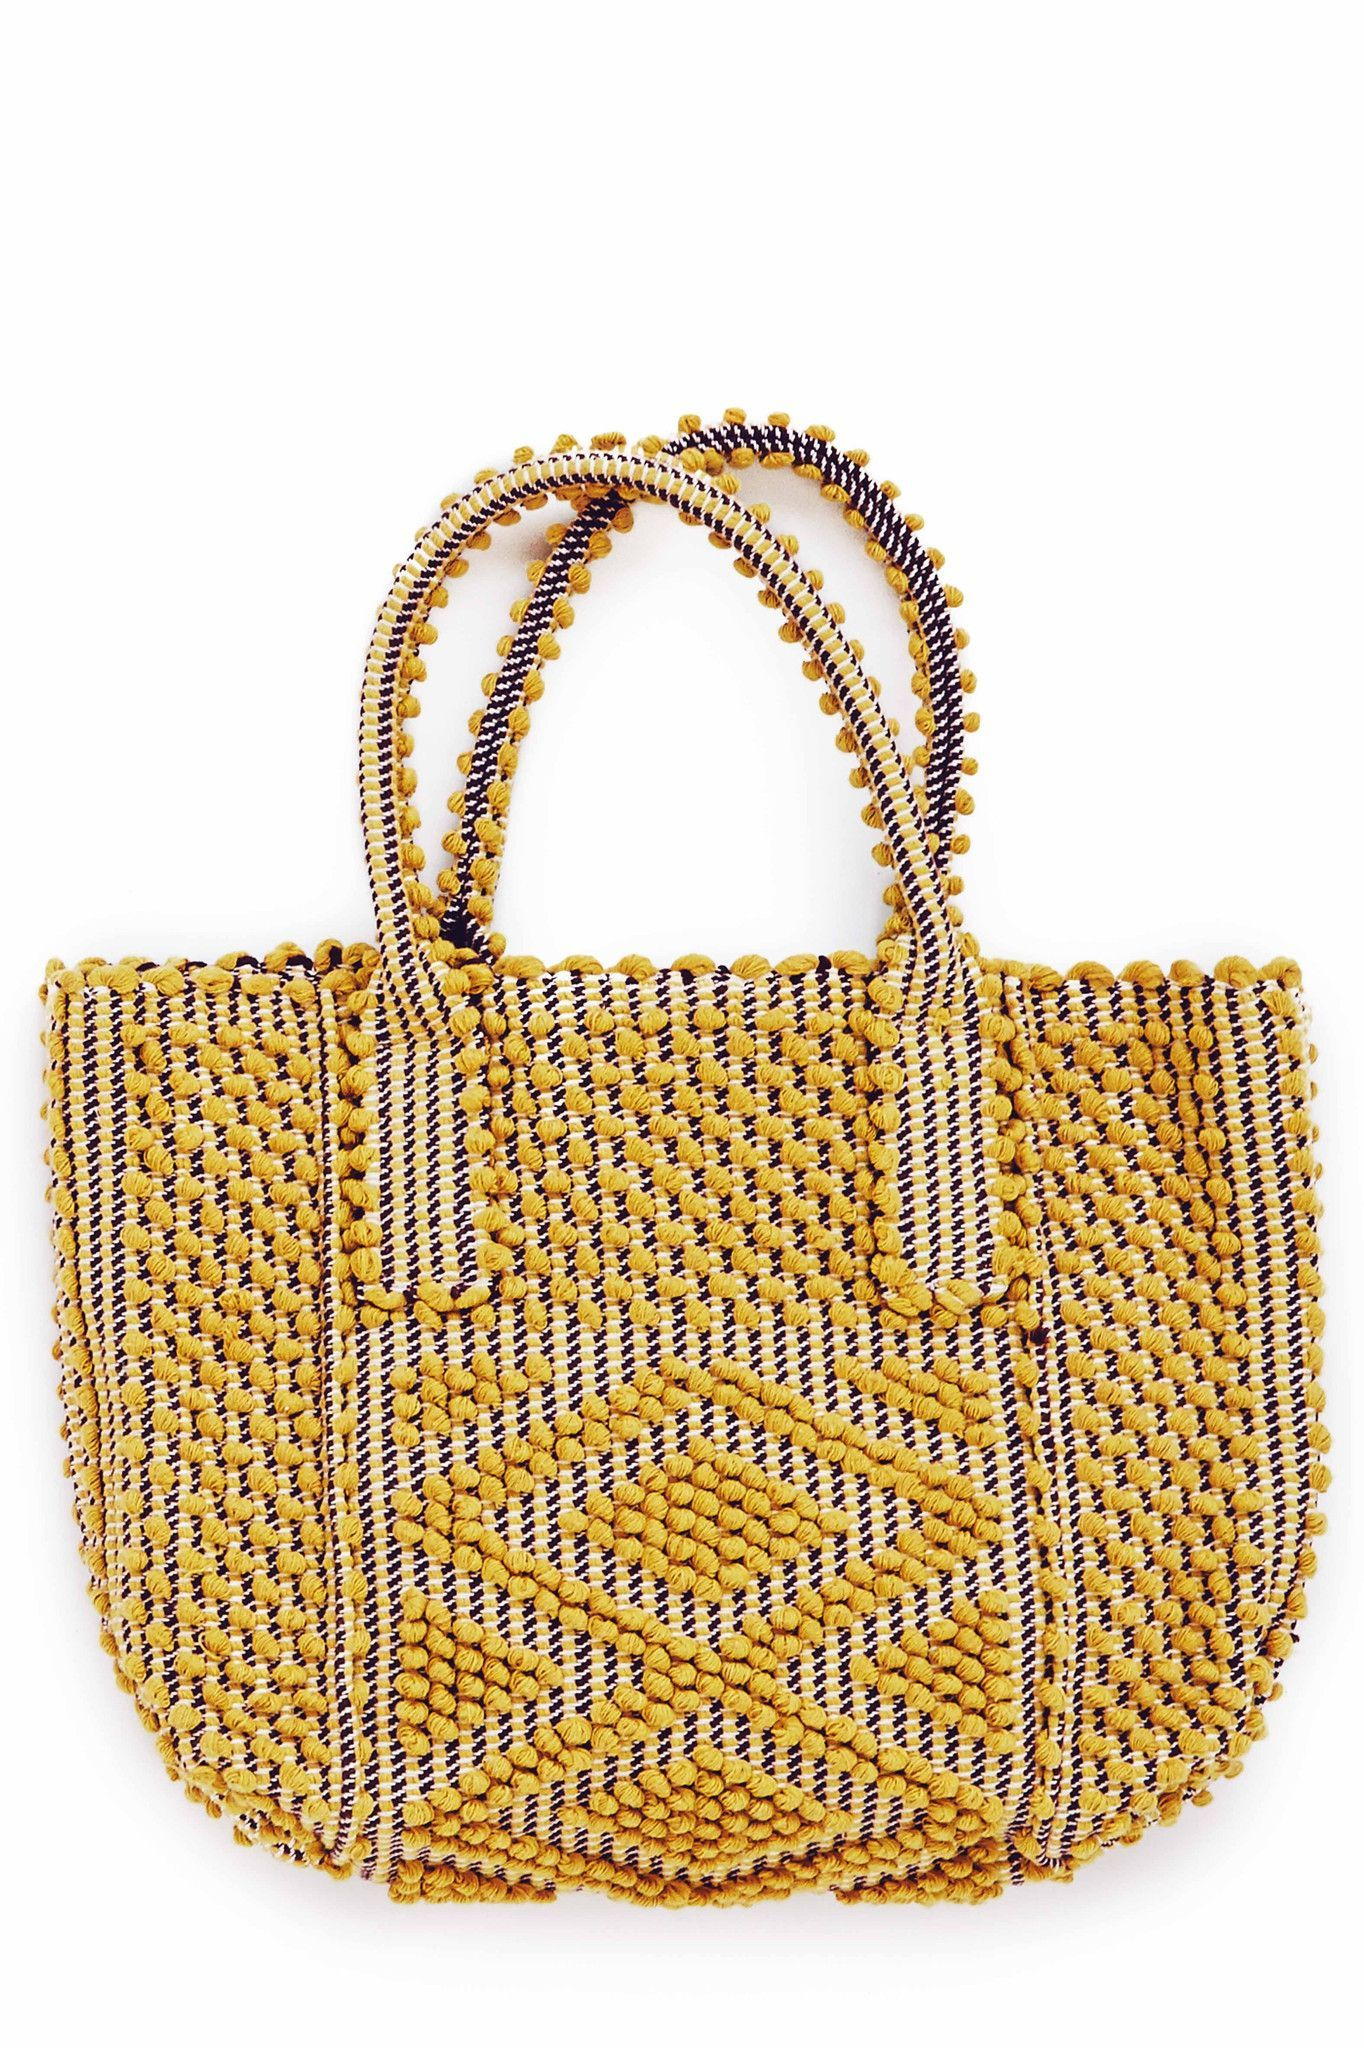 Antonello Tedde is a luxury, eco-conscious handbag collection designed in London and hand-crafted in Sardinia, Italy. The styles are produced in limited numbers and handwoven on looms using recycled a